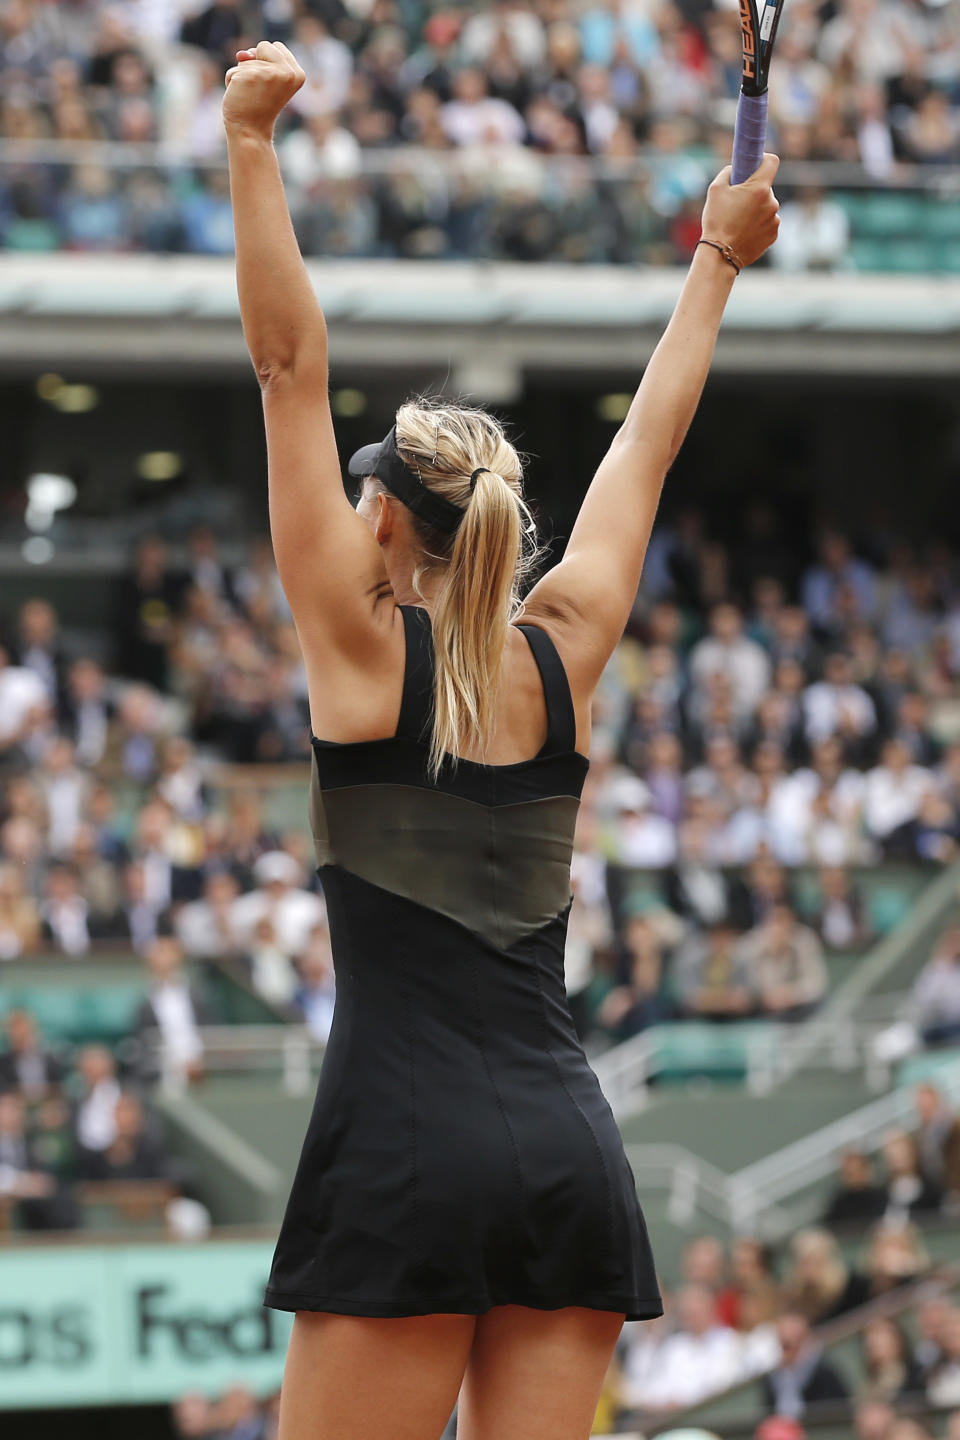 Maria Sharapova of Russia celebrates winning her quarter final match against Kaia Kanepi of Estonia at the French Open tennis tournament in Roland Garros stadium in Paris, Wednesday June 6, 2012. Sharapova won in two sets, 6-2, 6-3. (AP Photo/Christophe Ena)